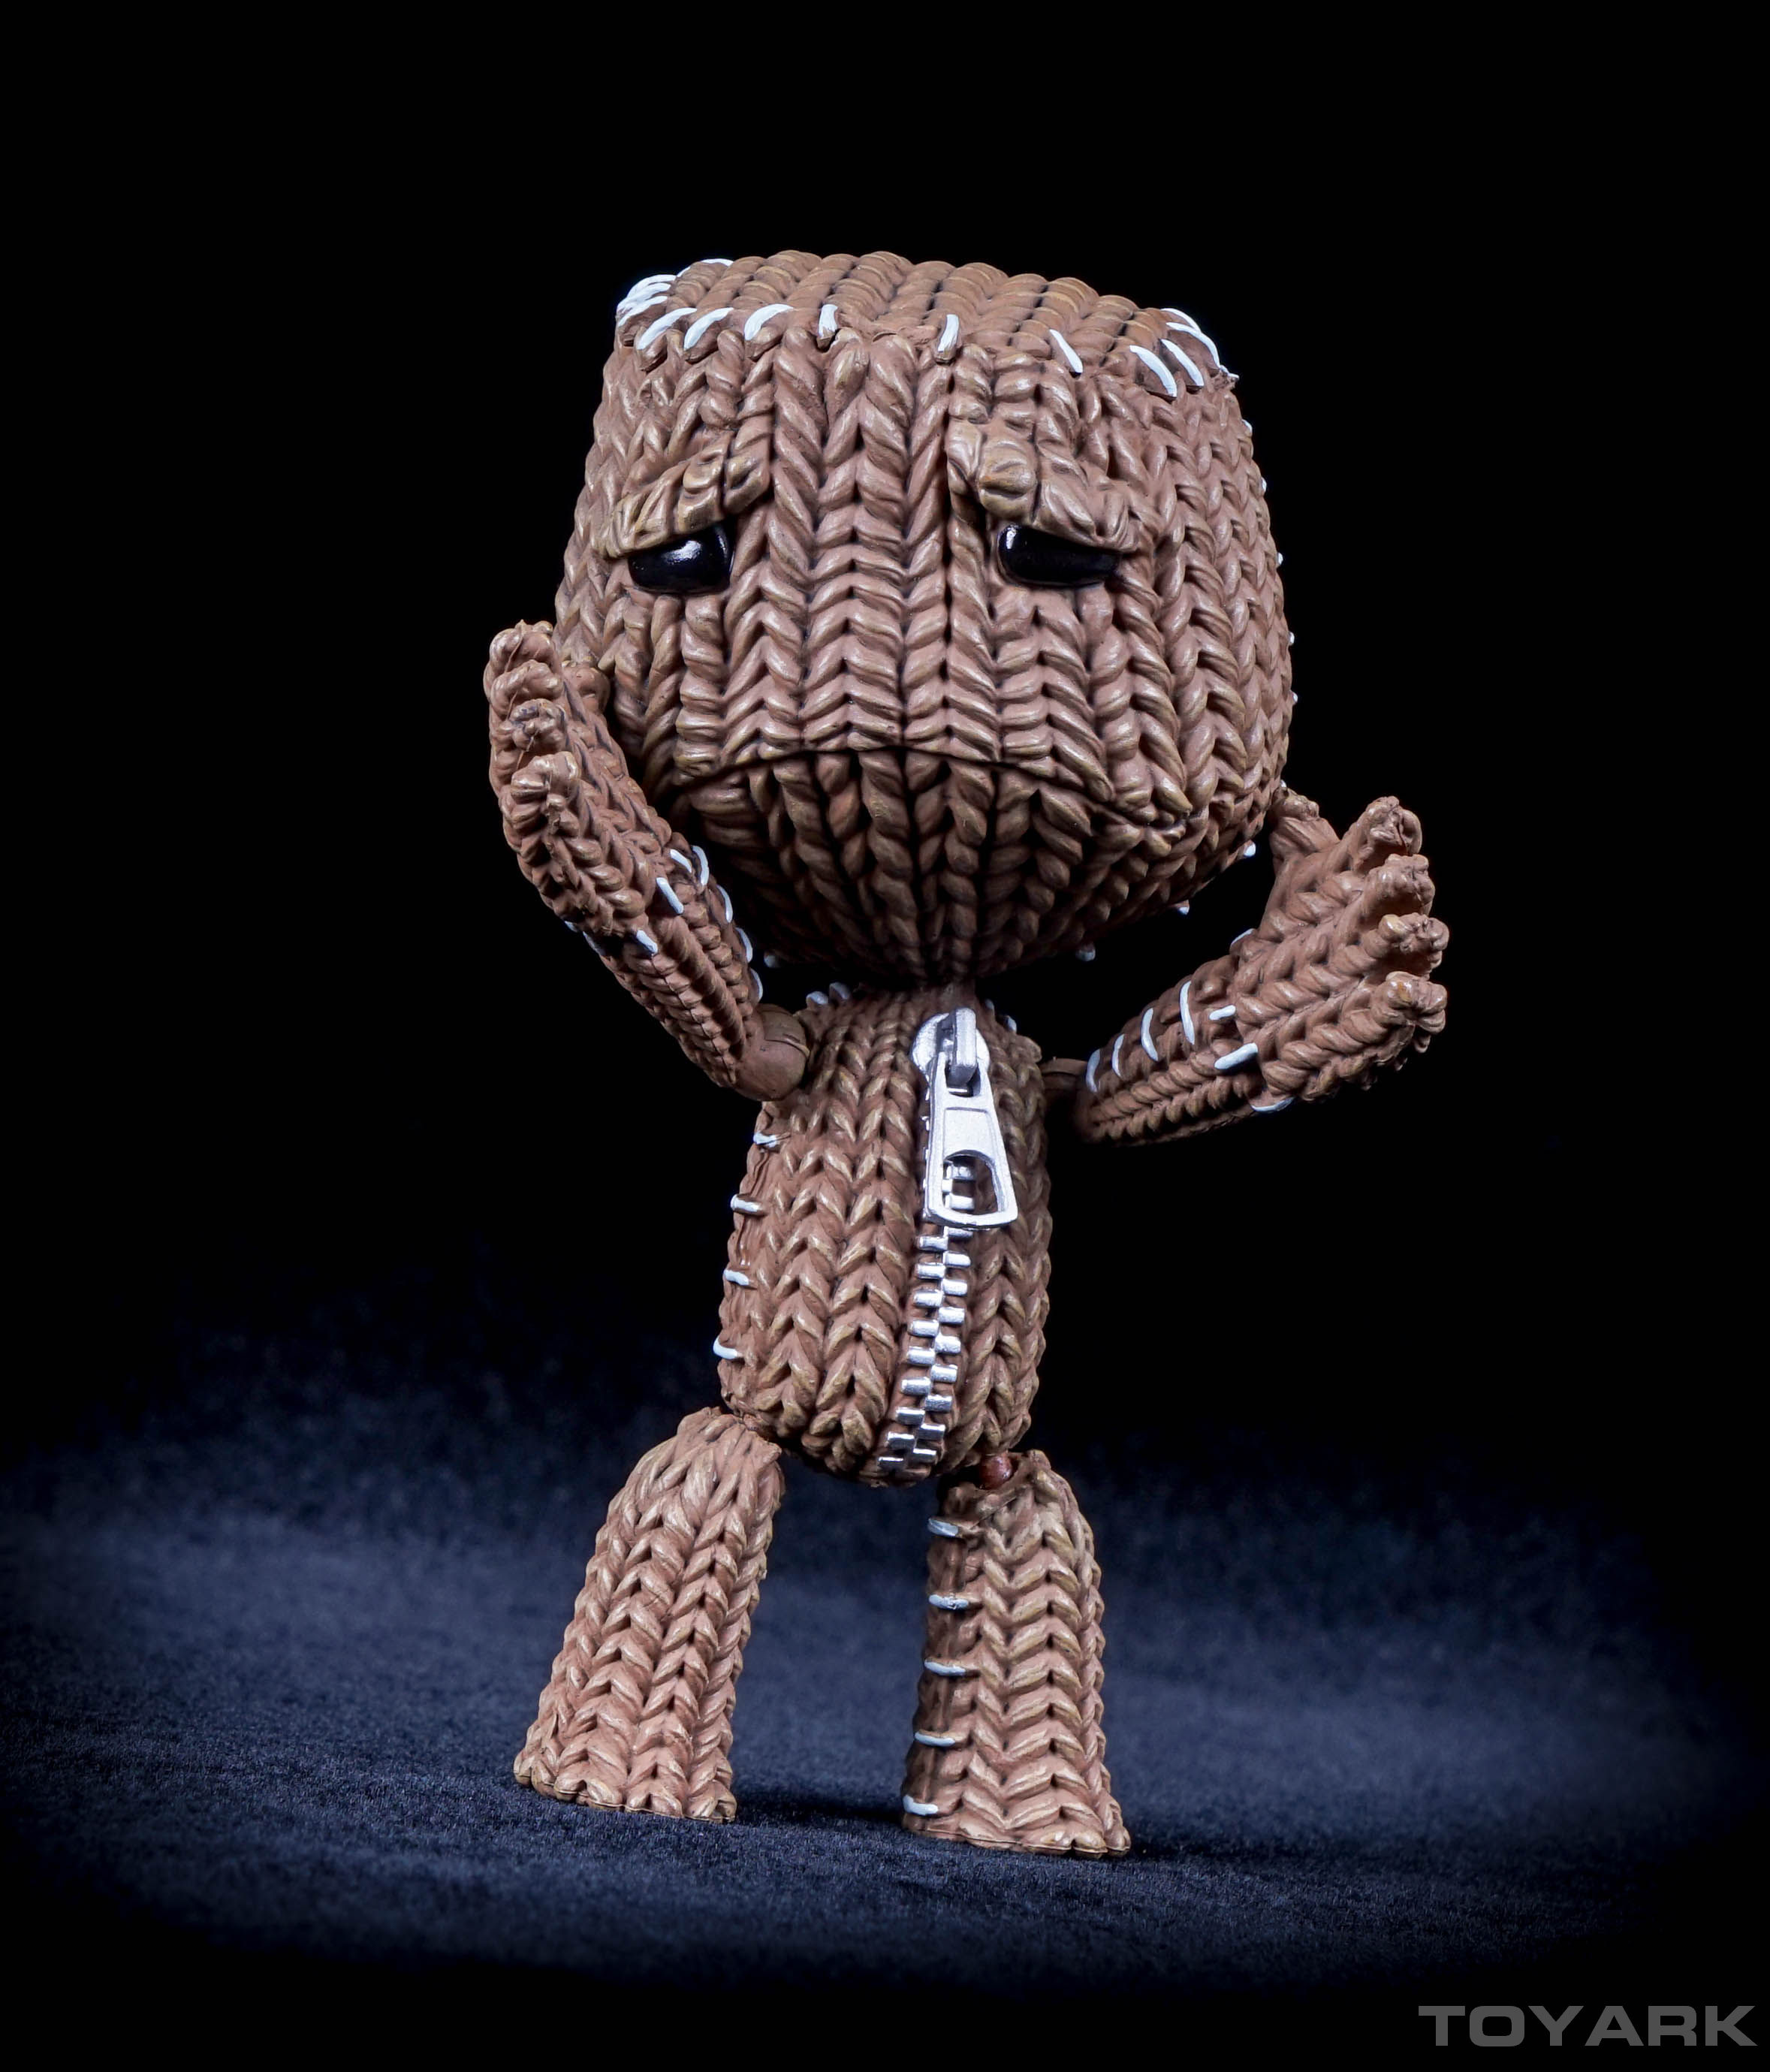 http://news.toyark.com/wp-content/uploads/sites/4/2015/11/LittleBigPlanet-Series-1-NECA-015.jpg